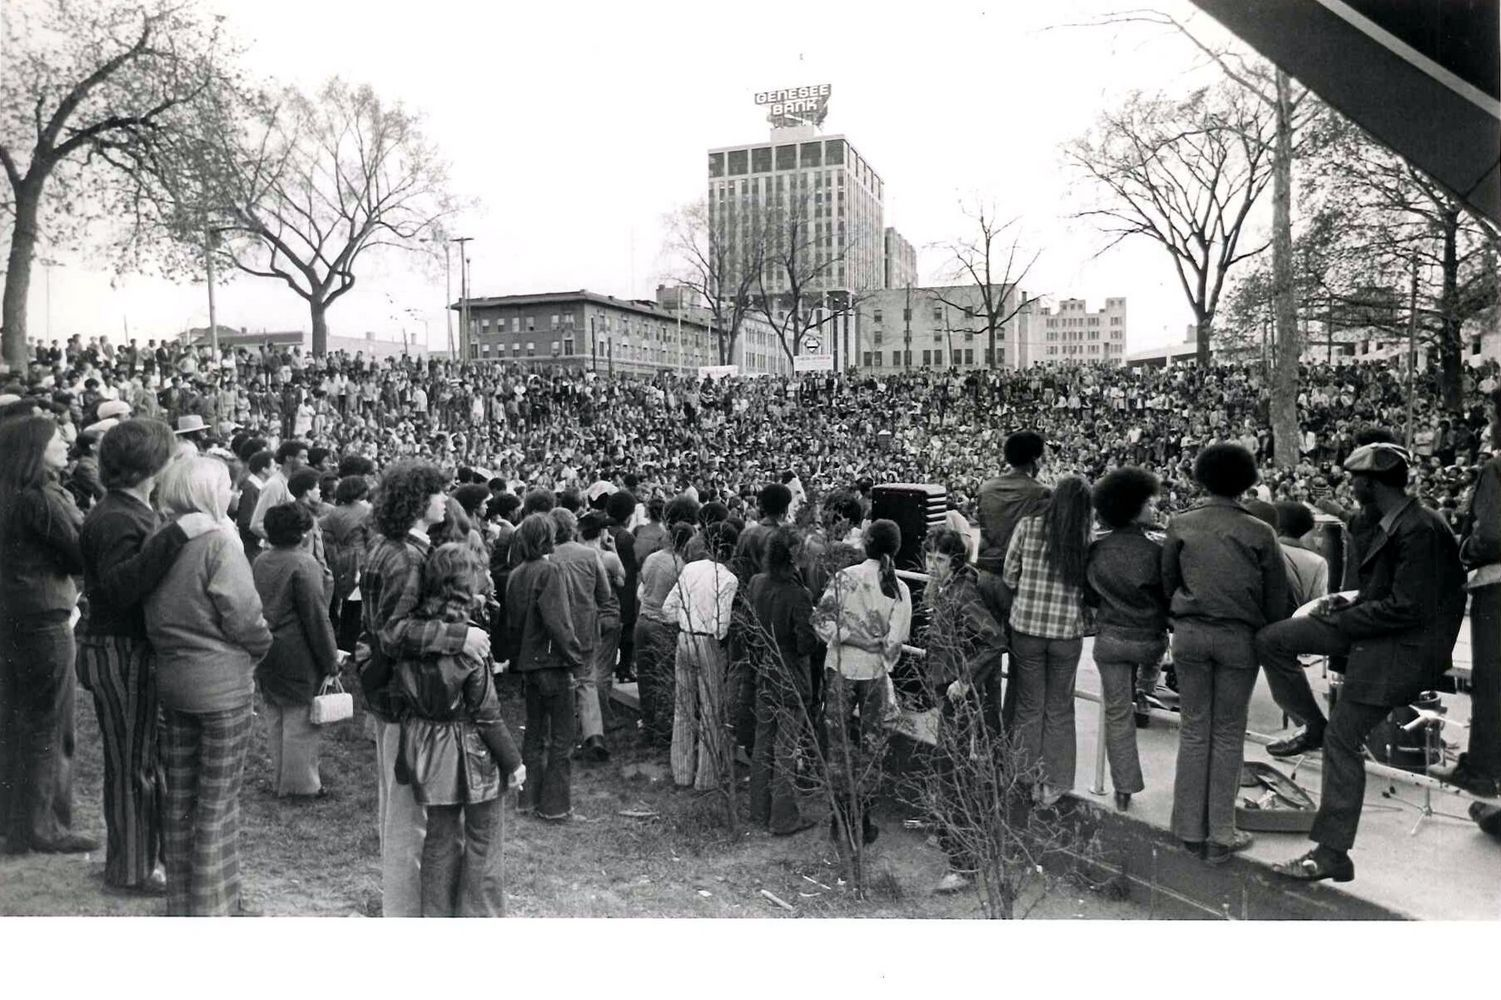 Protesters At Flint S Willson Park Urged End To War In 1970s